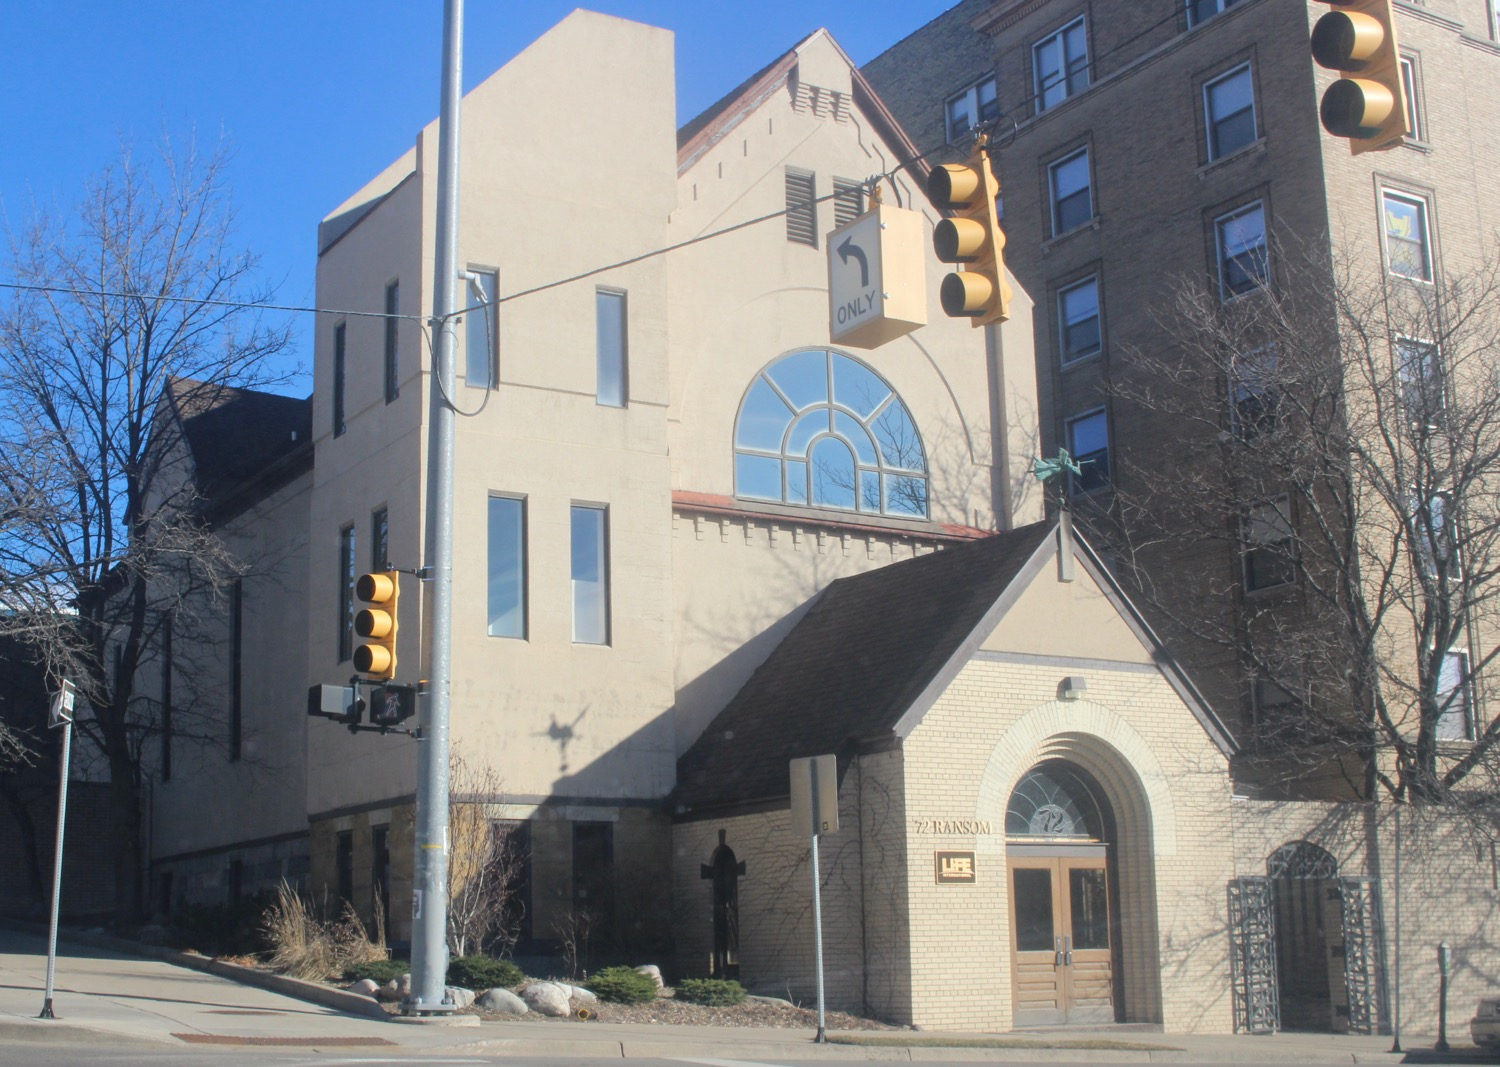 This is what the original Temple Emanuel Building looks like today.  It was located on Ransom at the intersection of Ransom and Fountain Street in the heart of downtown near Grand Rapids Community College.